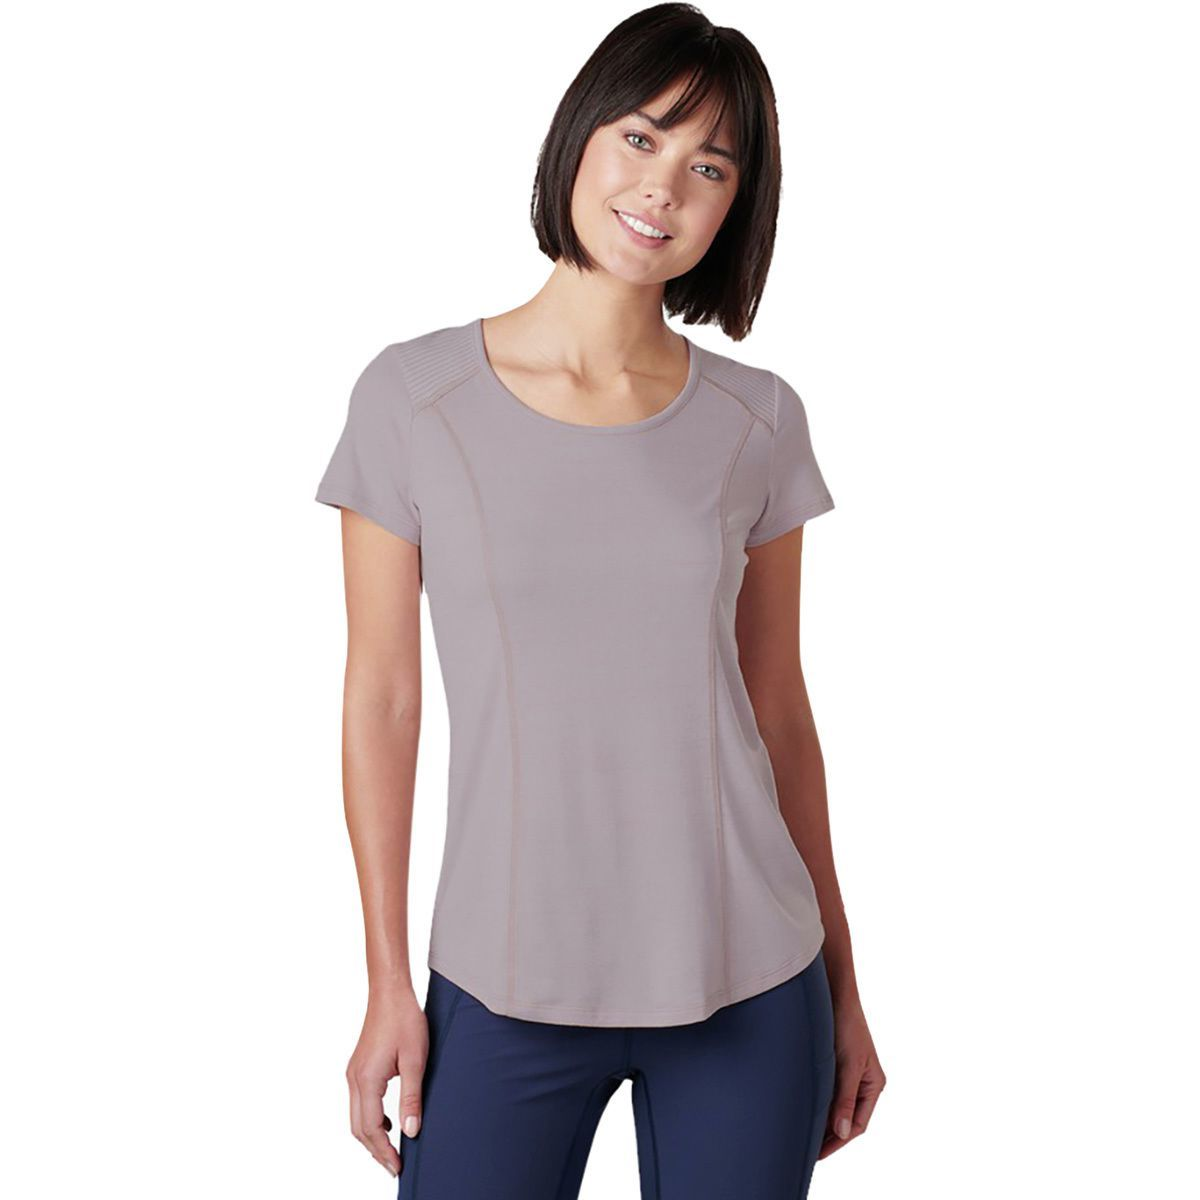 KUHL Intent Short-Sleeve Top - Women's